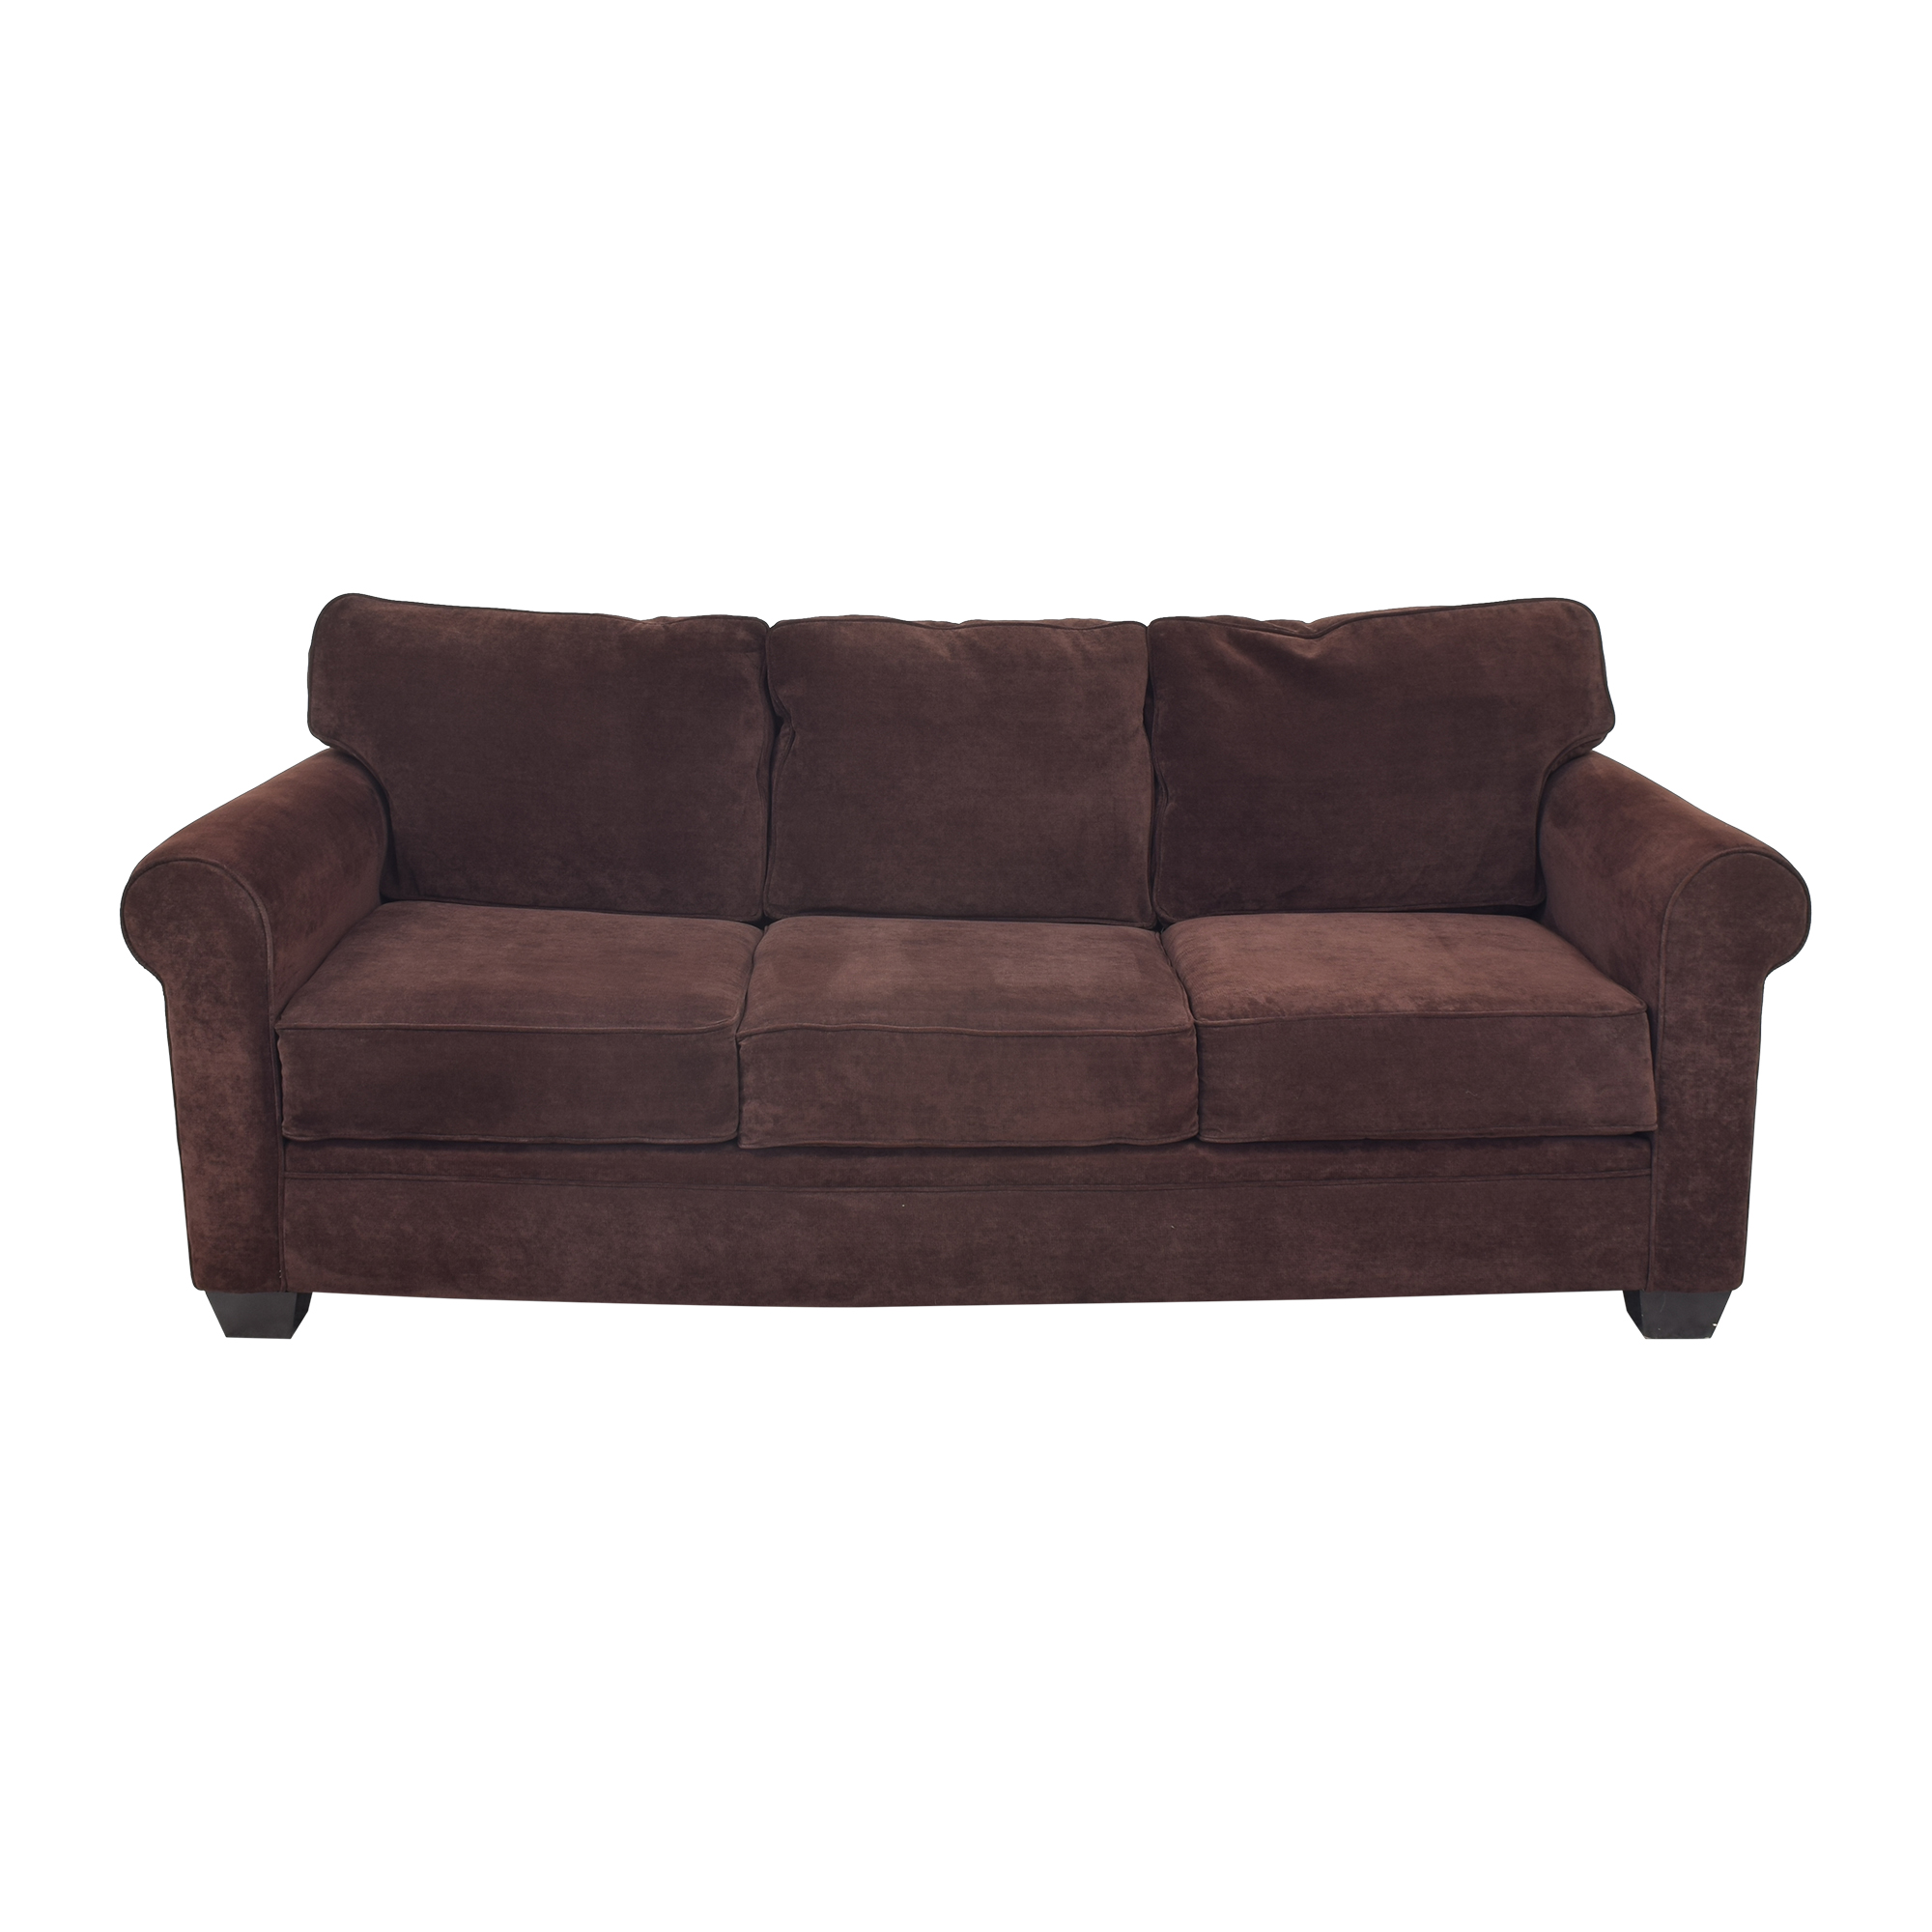 buy Jonathan Louis Orion Sofa Jonathan Louis Sofas